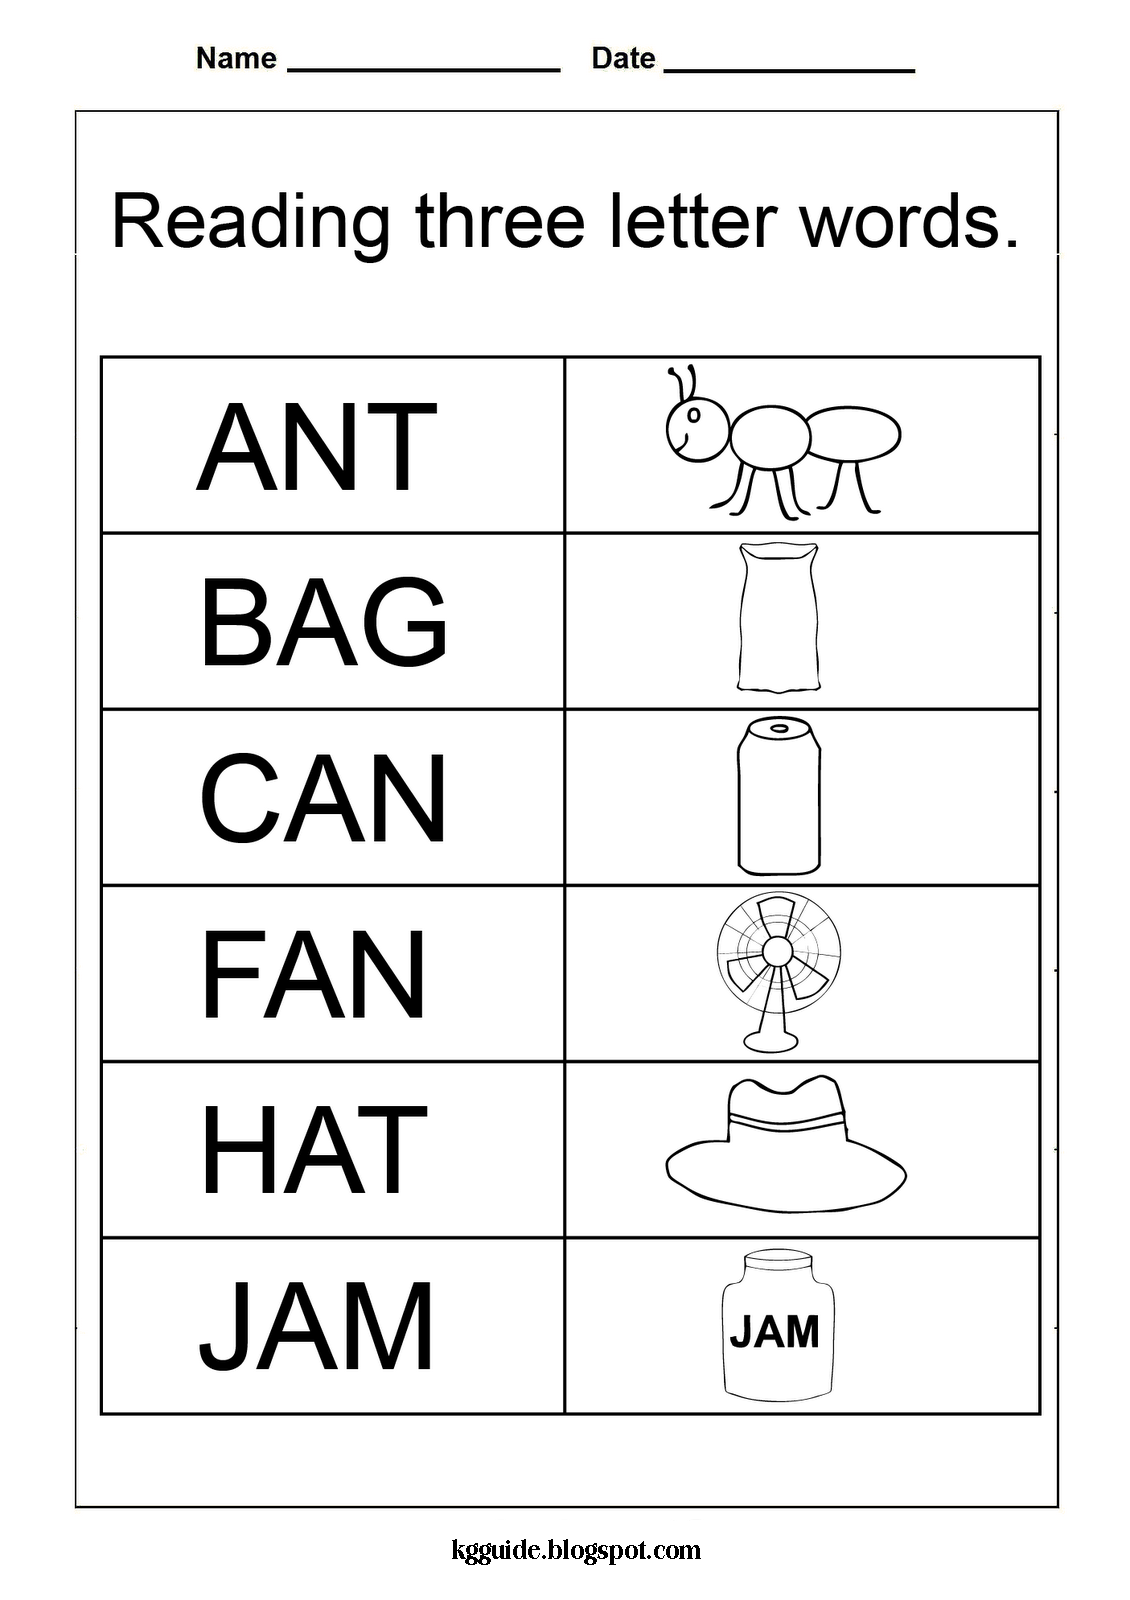 KINDERGARTEN WORKSHEET (THREE LETTER WORDS) ~ Kindergarten Worksheet ...